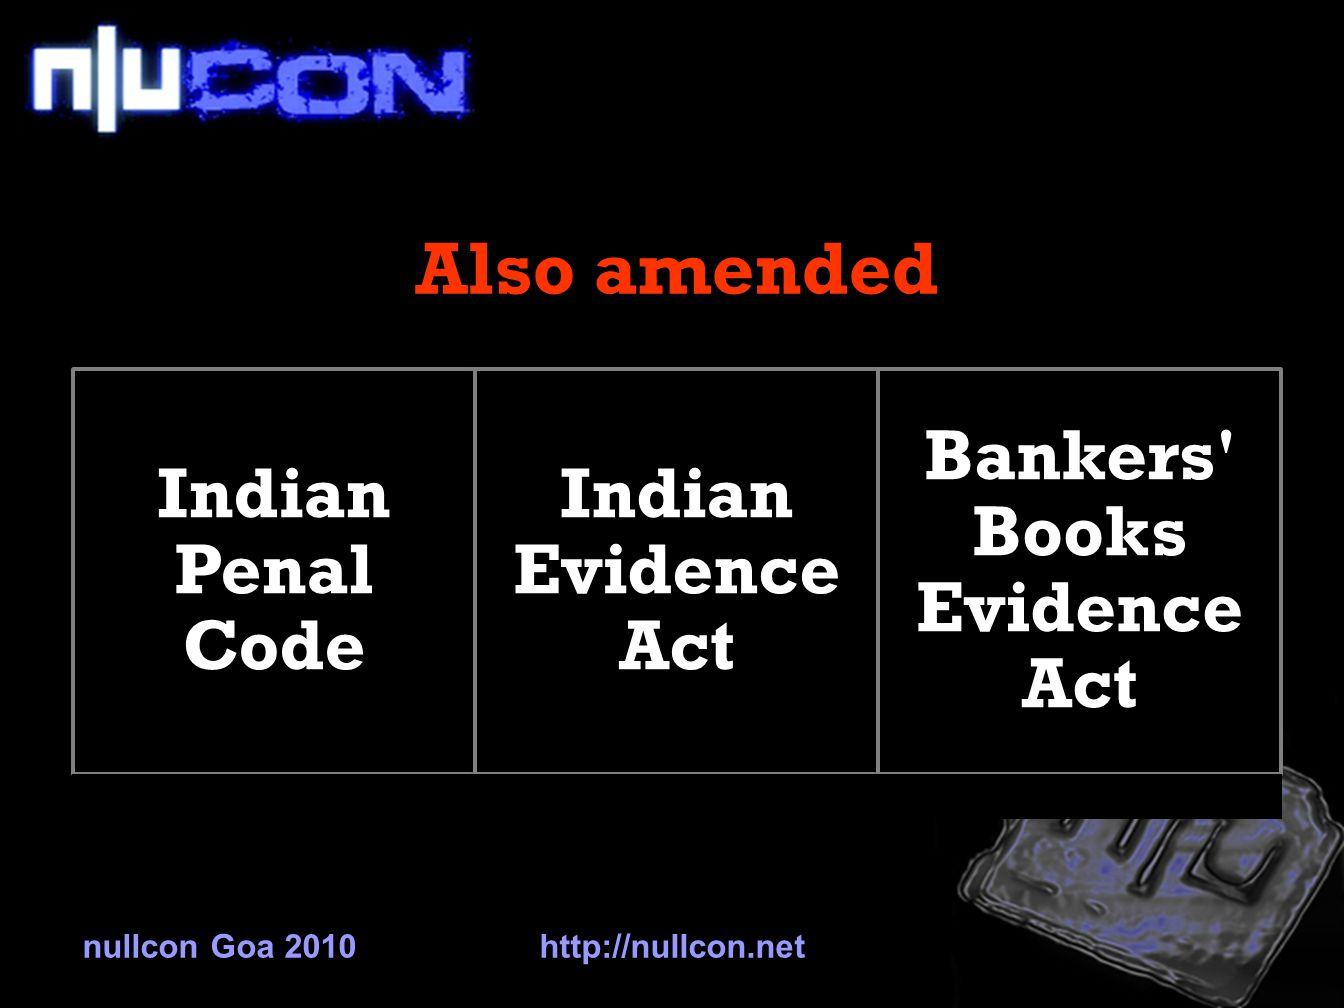 Criminal Provisions Section 66 Provision has been significantly changed.